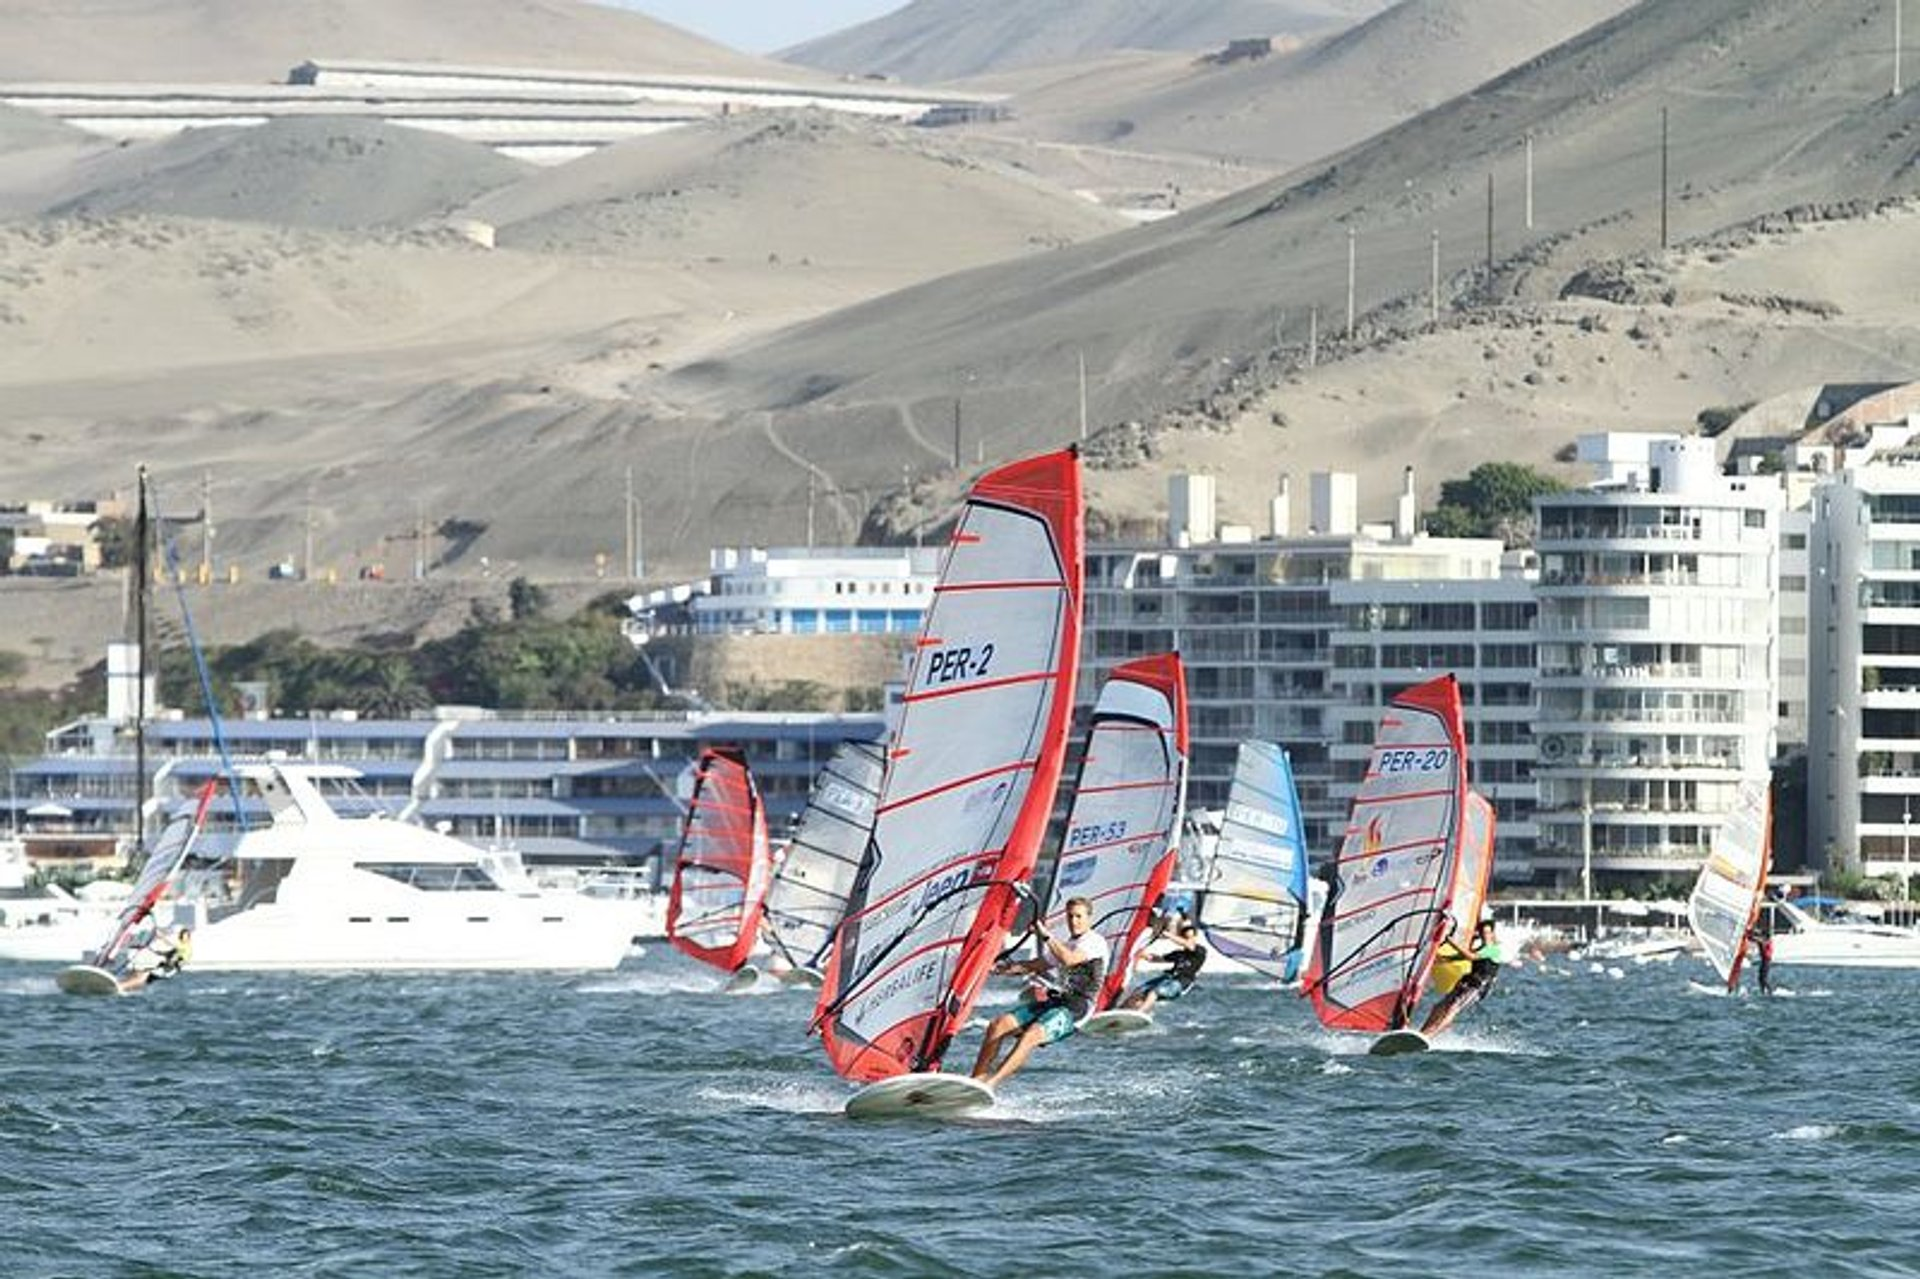 Kitesurfing and Windsurfing in Peru - Best Season 2020